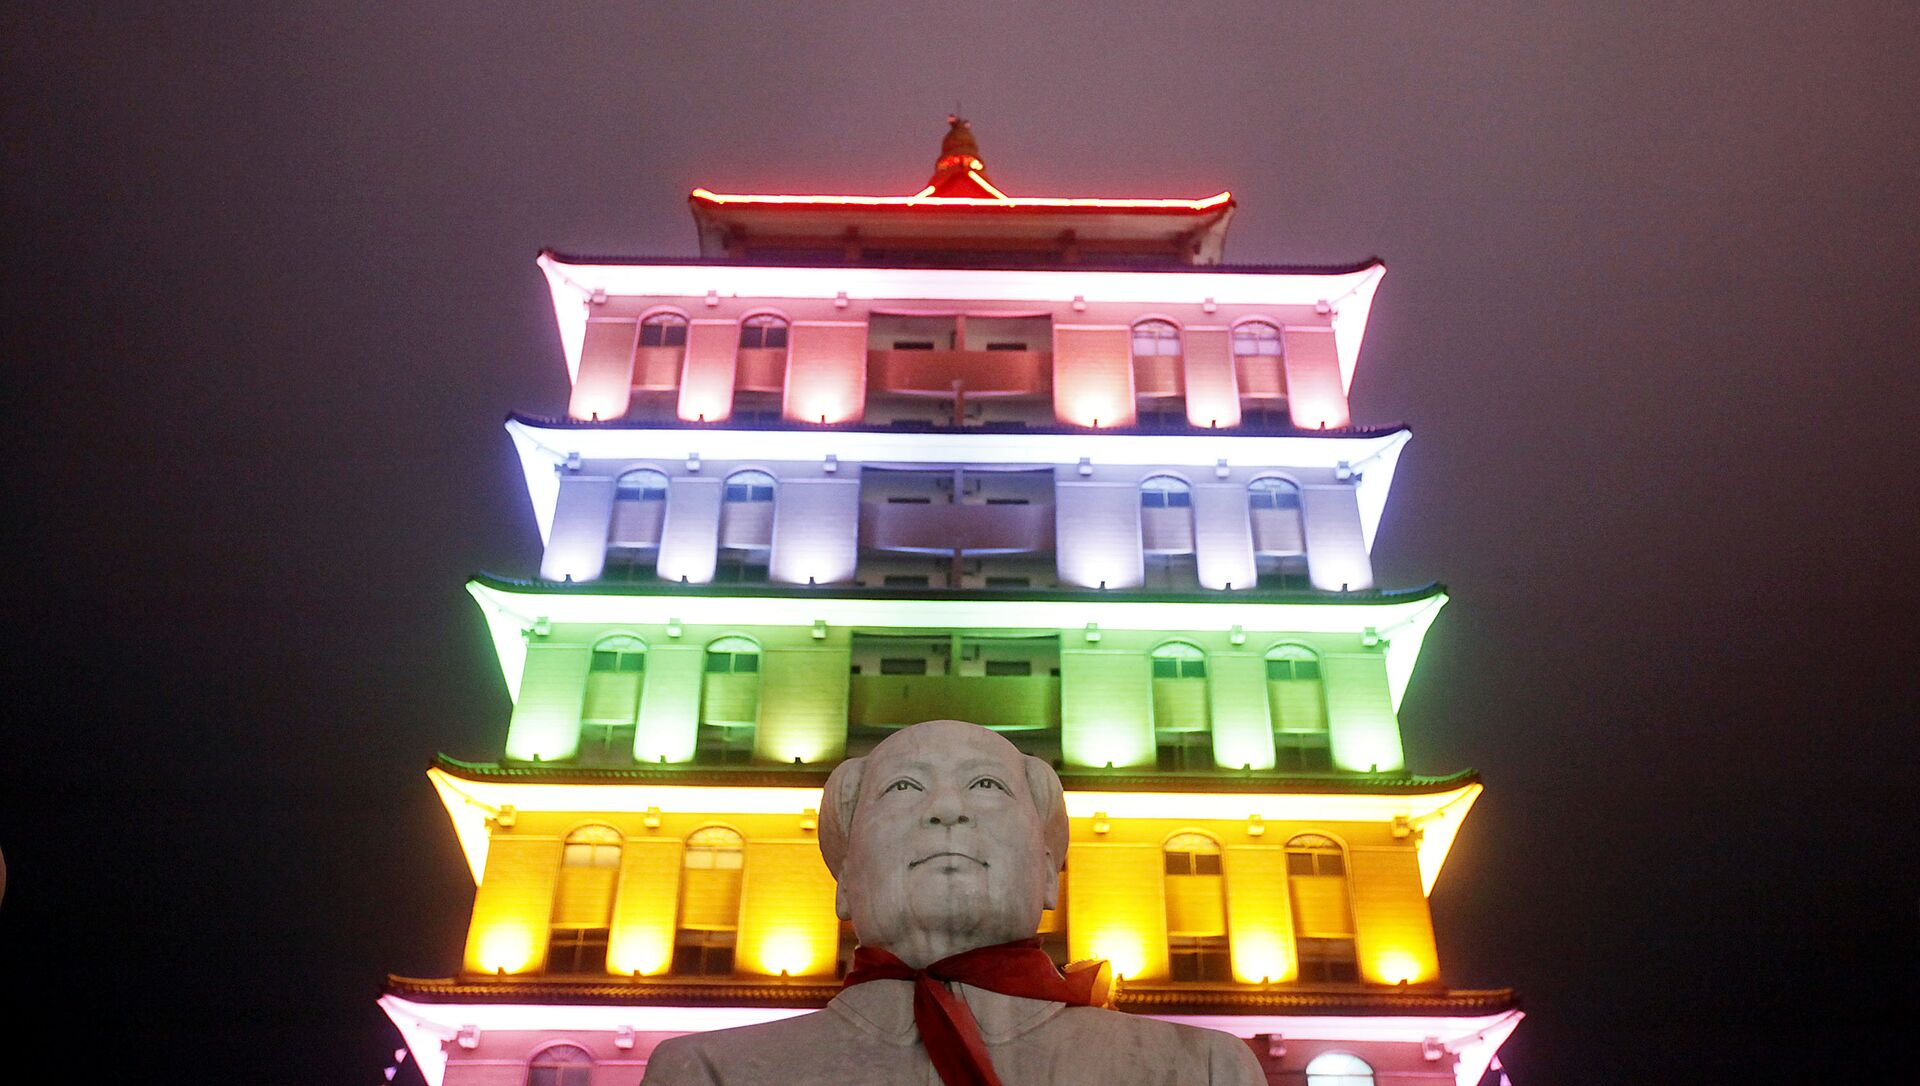 This Aug. 11, 2009 photo shows a statue of Mao Zedong in front of an illuminated pagoda-shape building in Huaxi, Jiangsu Province, China - Sputnik International, 1920, 29.07.2021